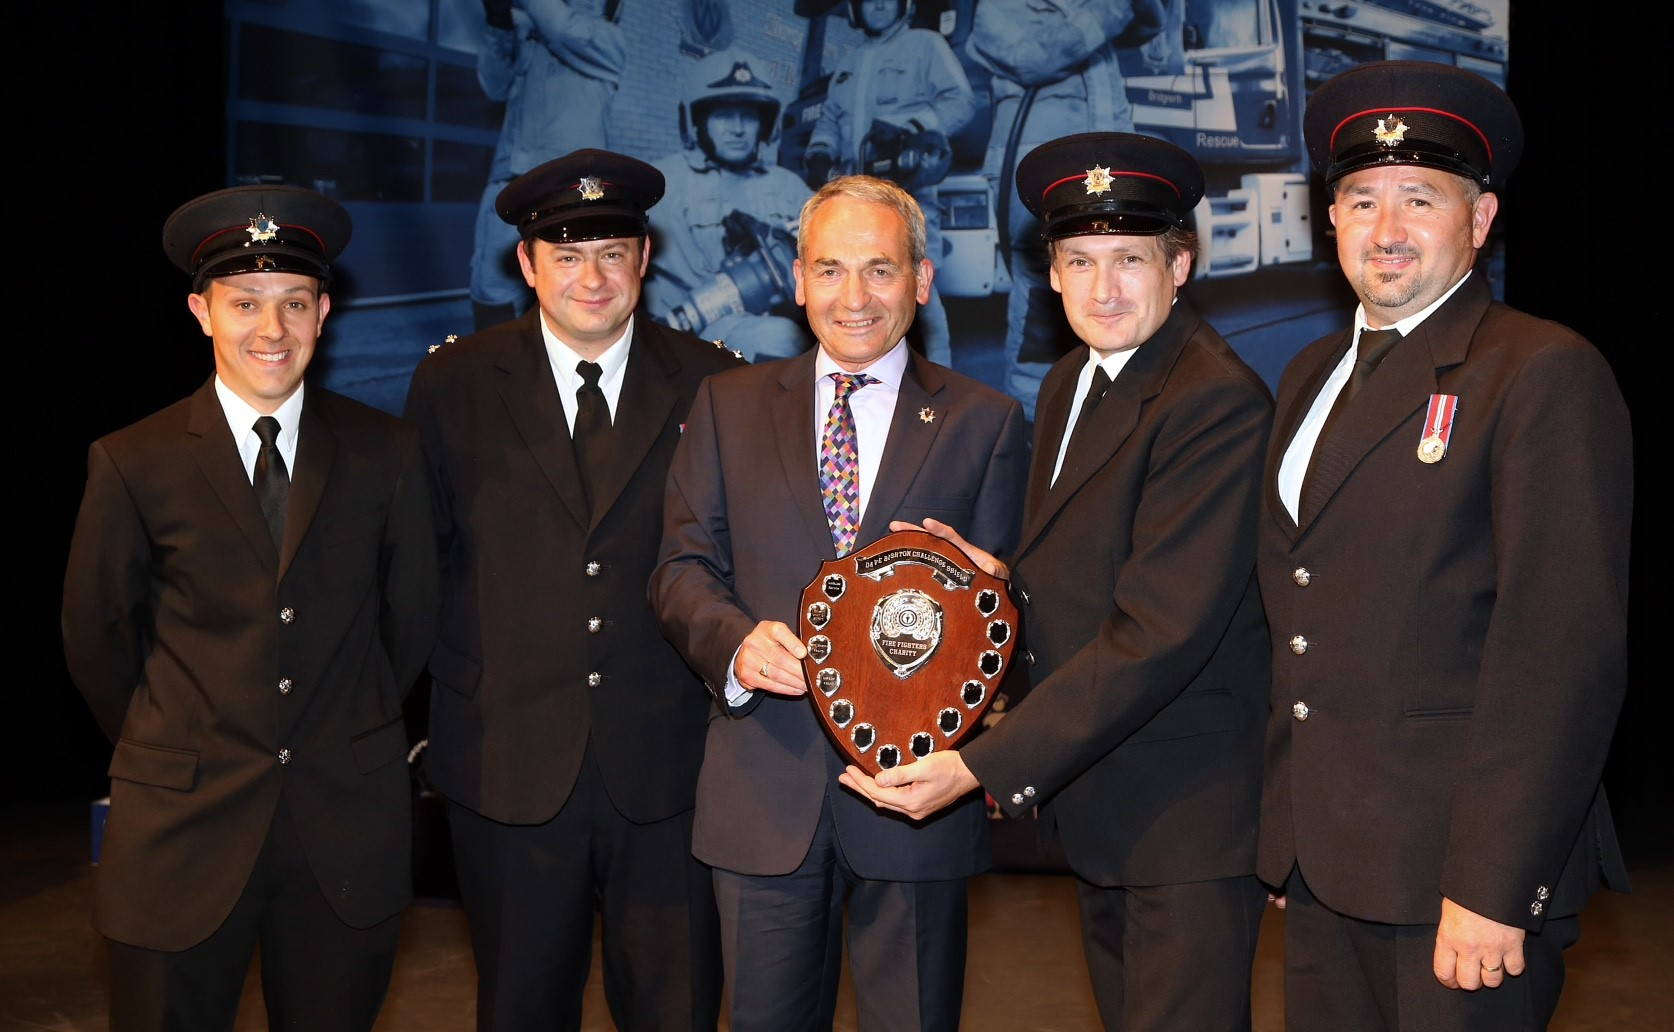 Councillor Keith Roberts (centre) presents the Dave Bishton Challenge Shield to Bridgnorth Fire Station's Joe Smallman, Ashley Brown, Steve Power and Ian George.